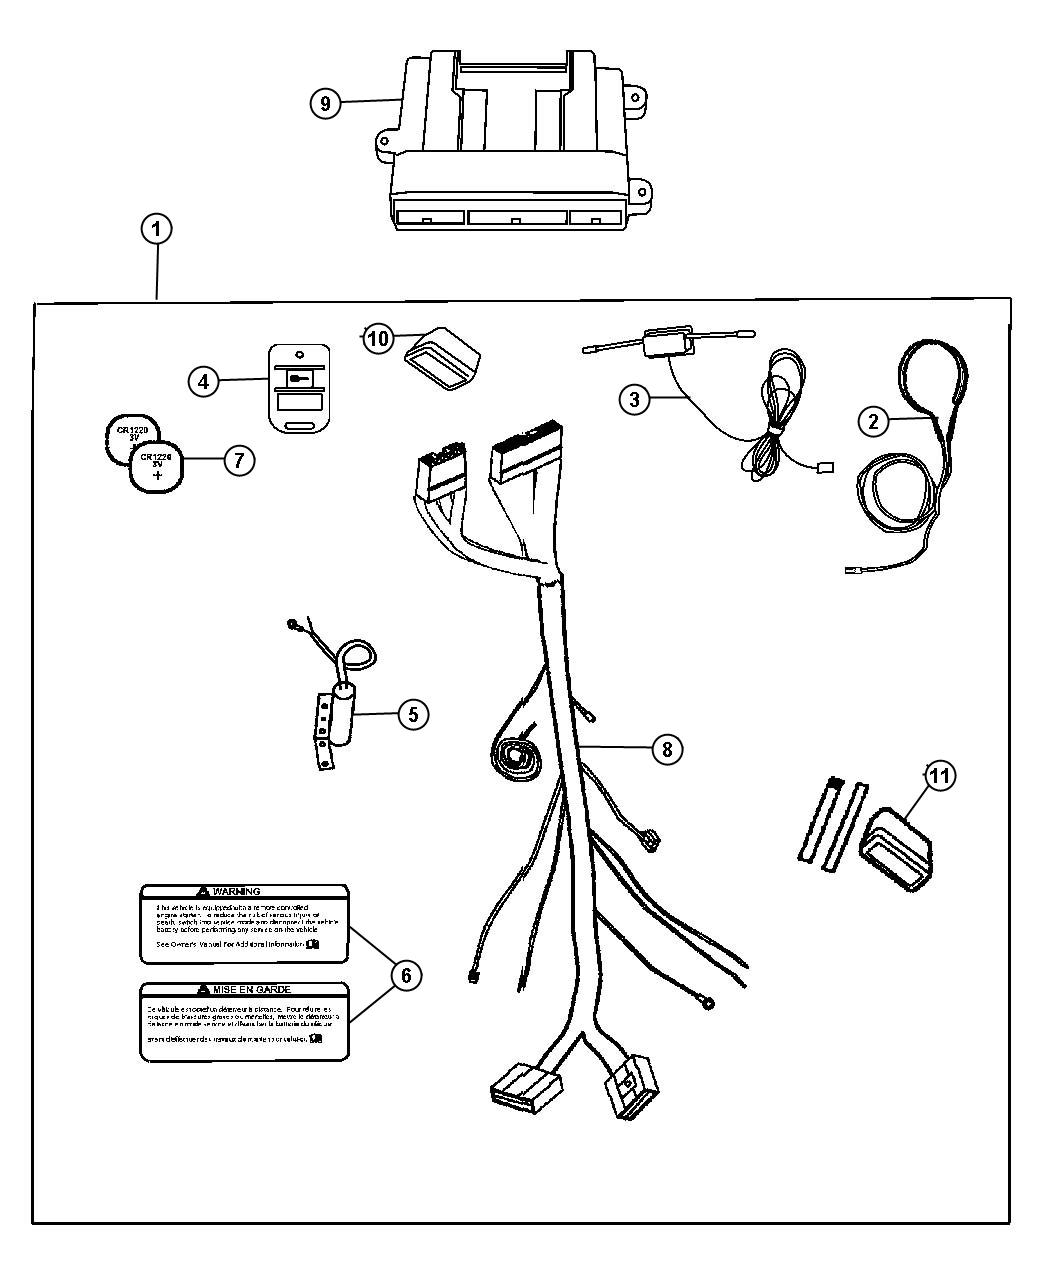 2005 Chrysler Town And Country Wiring Diagram likewise Starter Slave Solenoid Wiring Diagram besides Tcr Advanced 1 2011 in addition Important Wordpress Security Alert together with Ss 35249590. on remote start tools